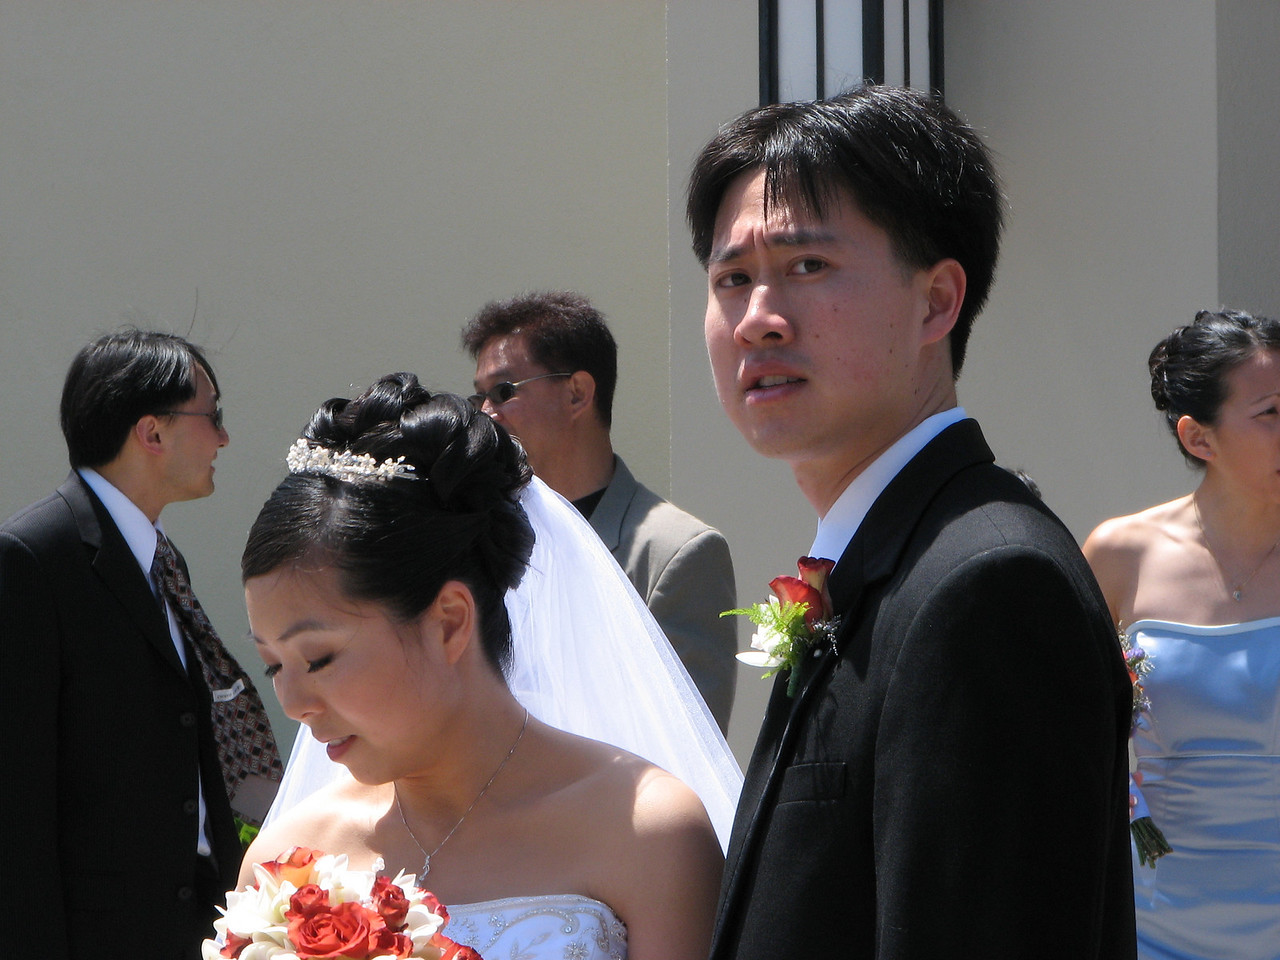 2007 05 19 Sat - Stephen & Cynthia Chang outside church 3 - Steve doesn't look happy with me